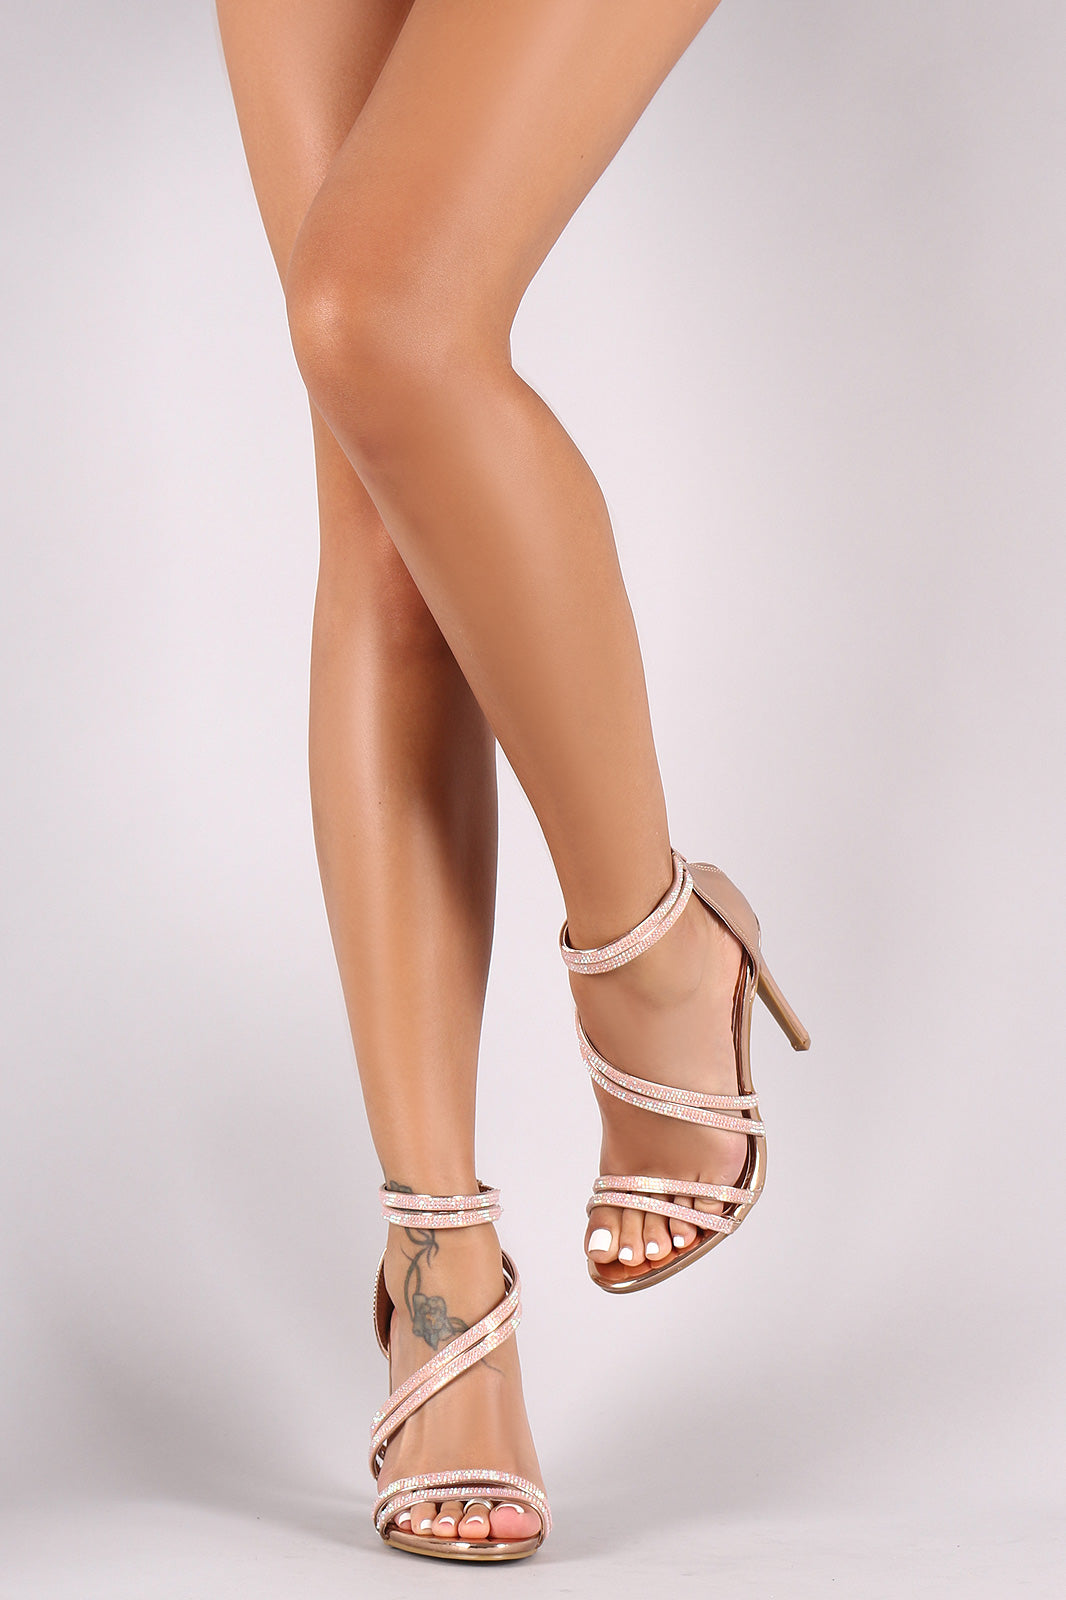 e3090183a45 Anne Michelle Asymmetrical Strappy Rhinestone Open Toe Stiletto Heel ...